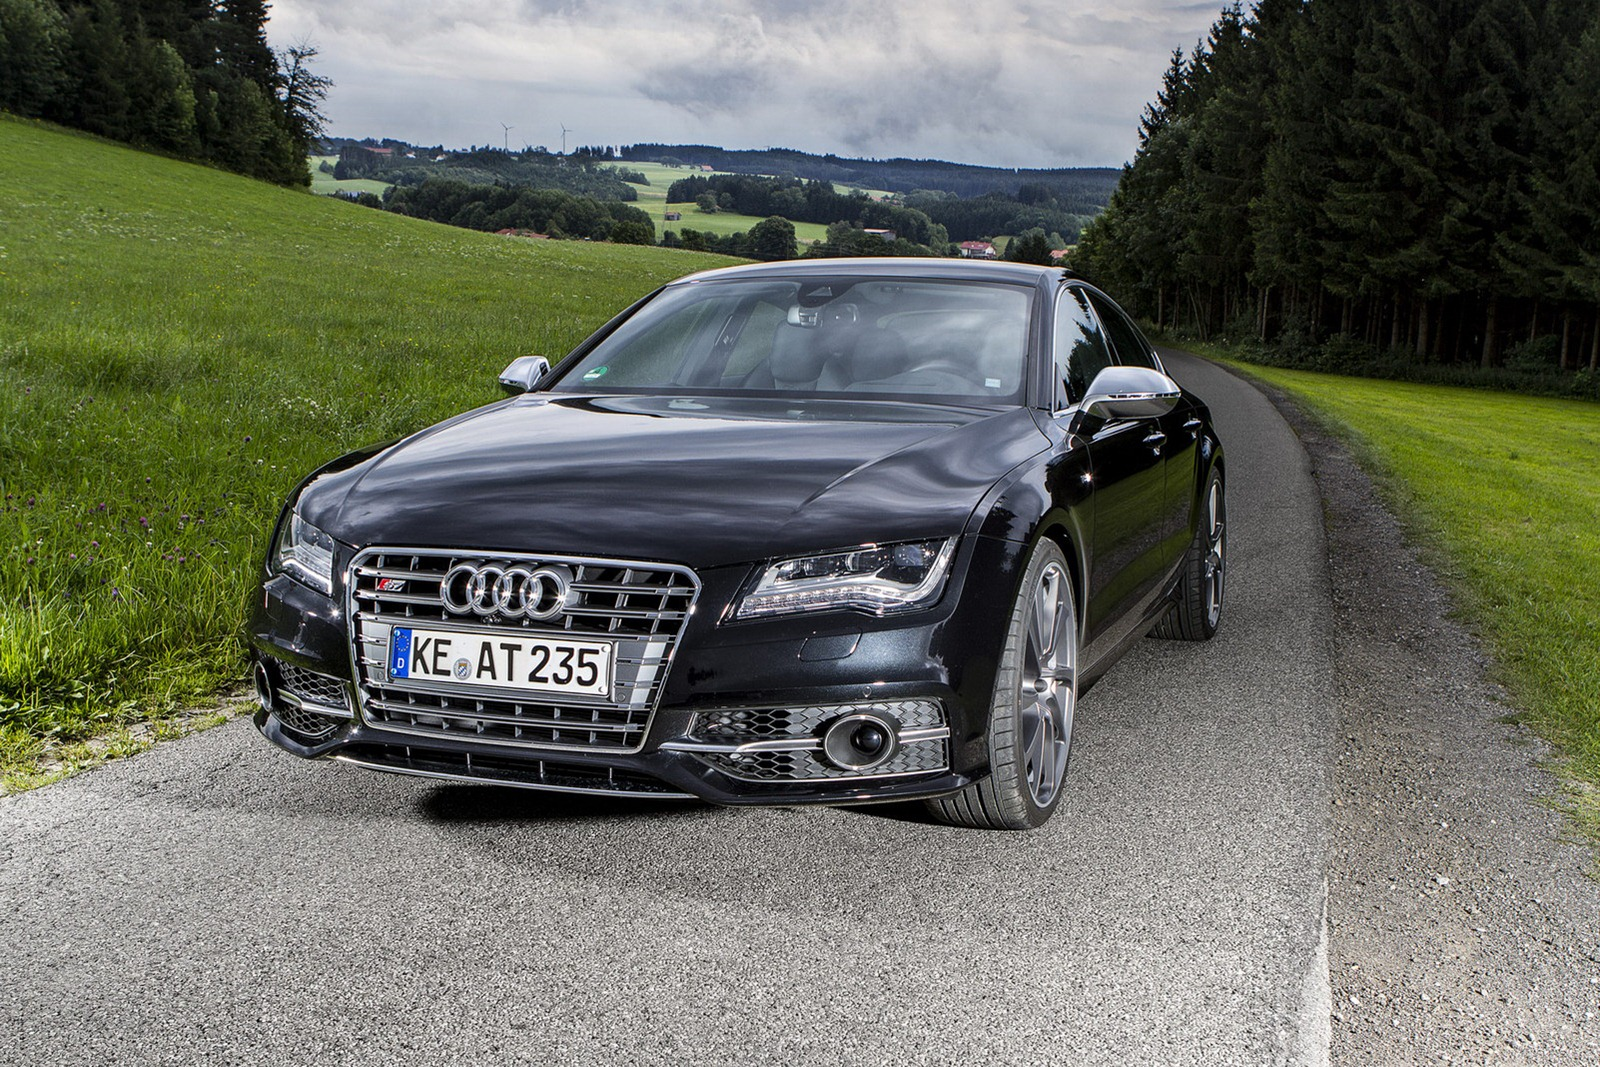 ... tuned Audi S7 Sportback with over 510 horsepower - ForceGT.com